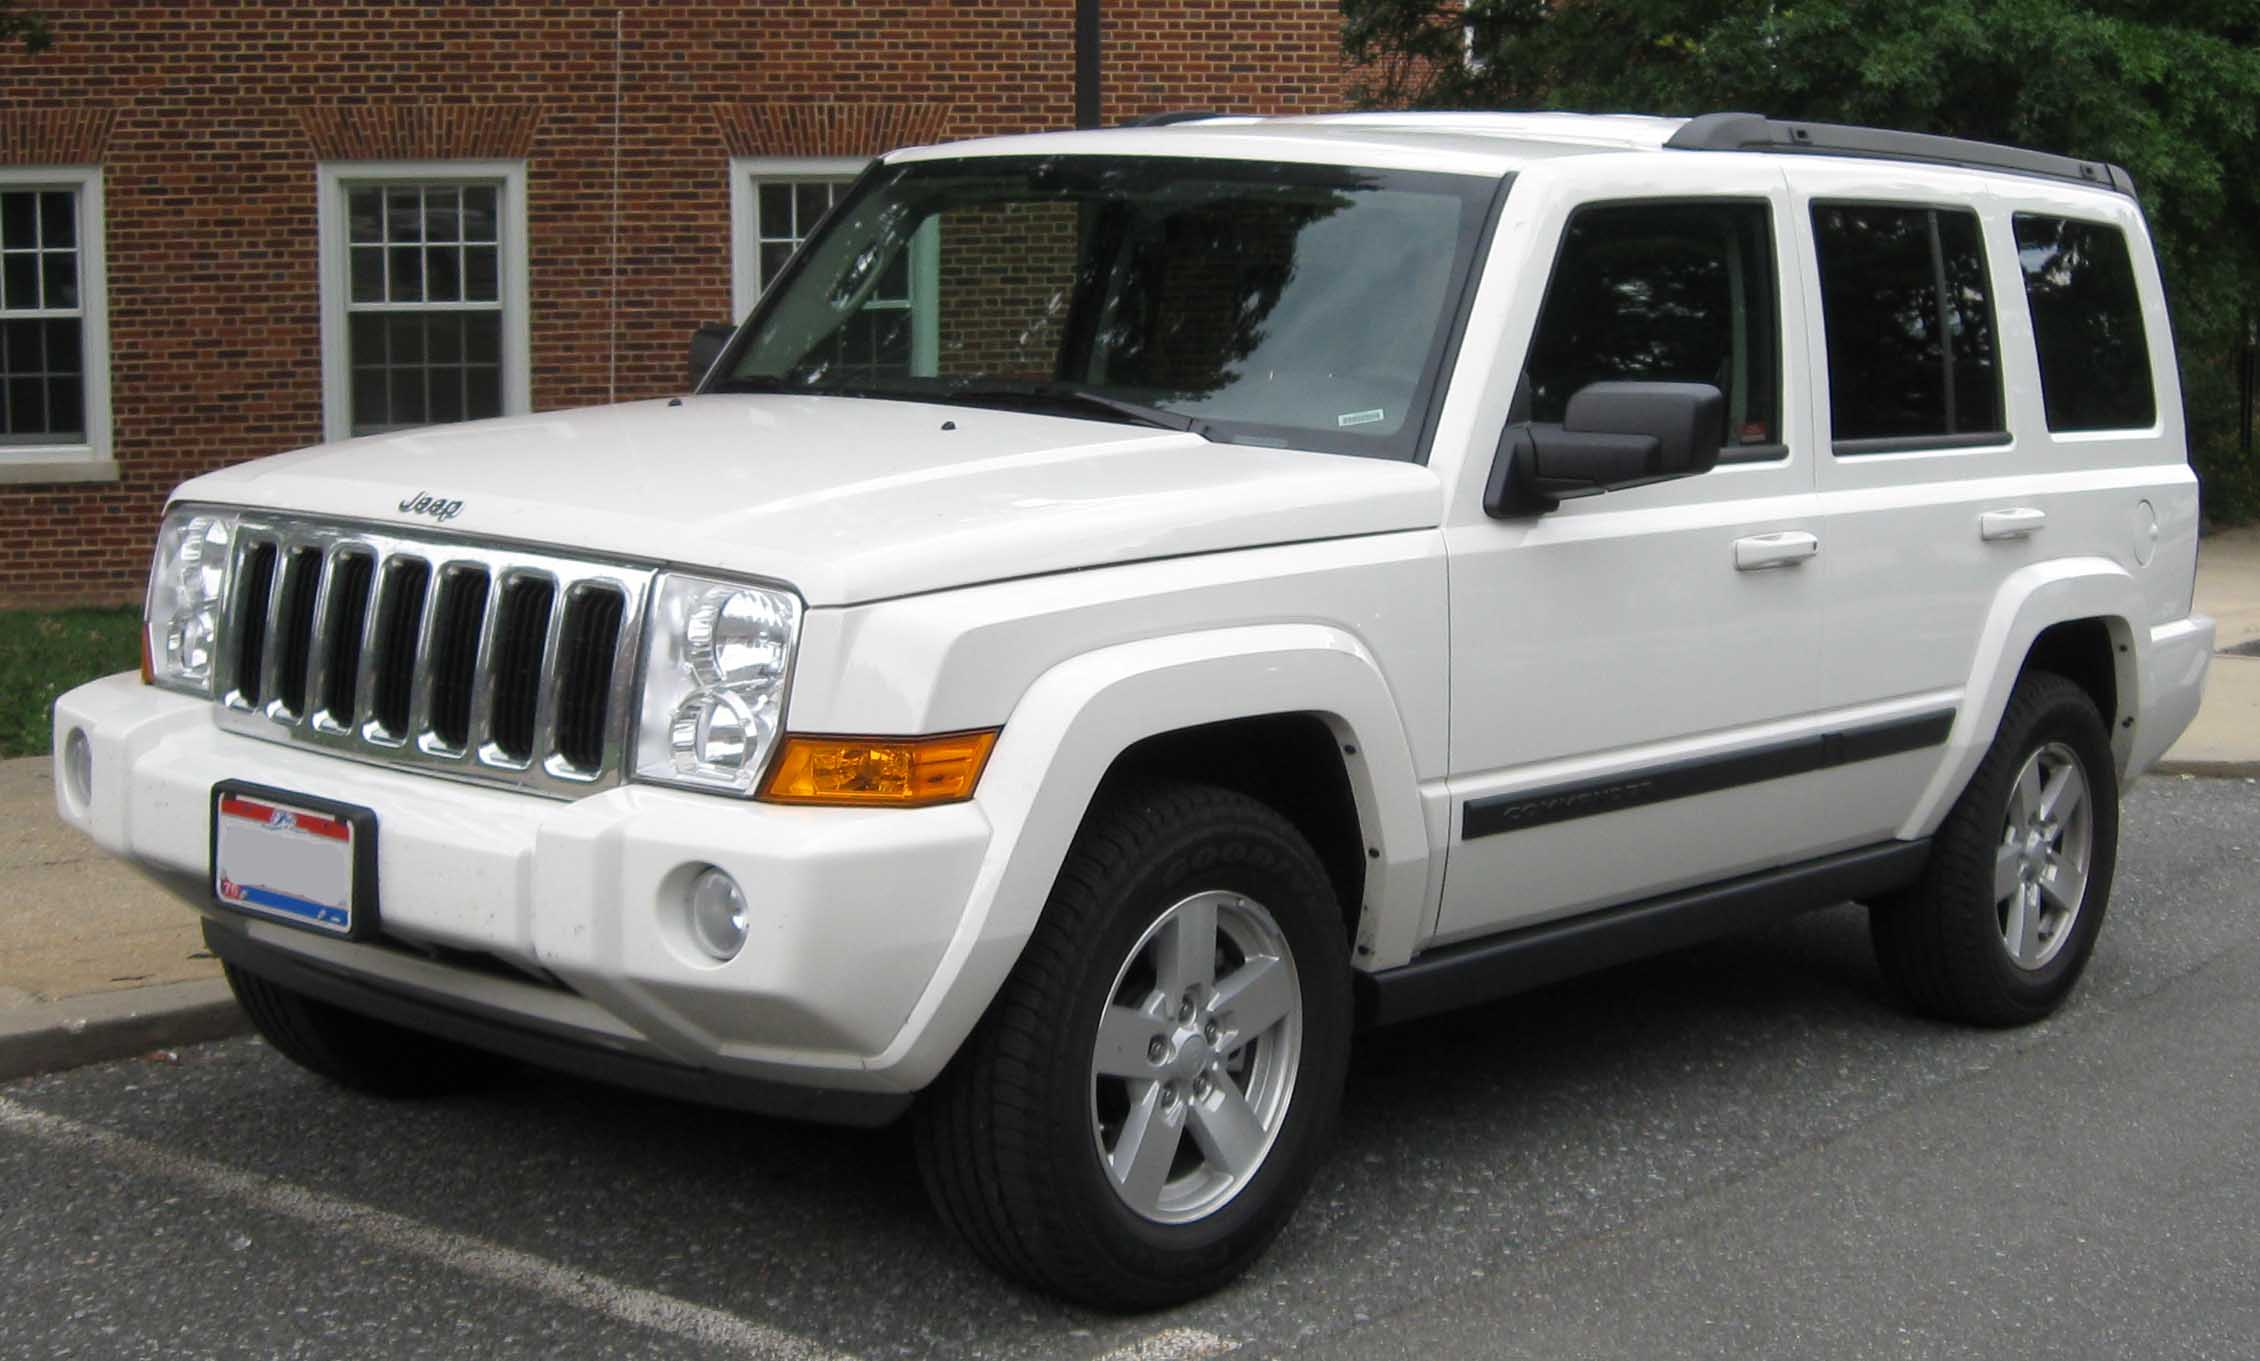 Jeep Commander. (source: Wikipedia)